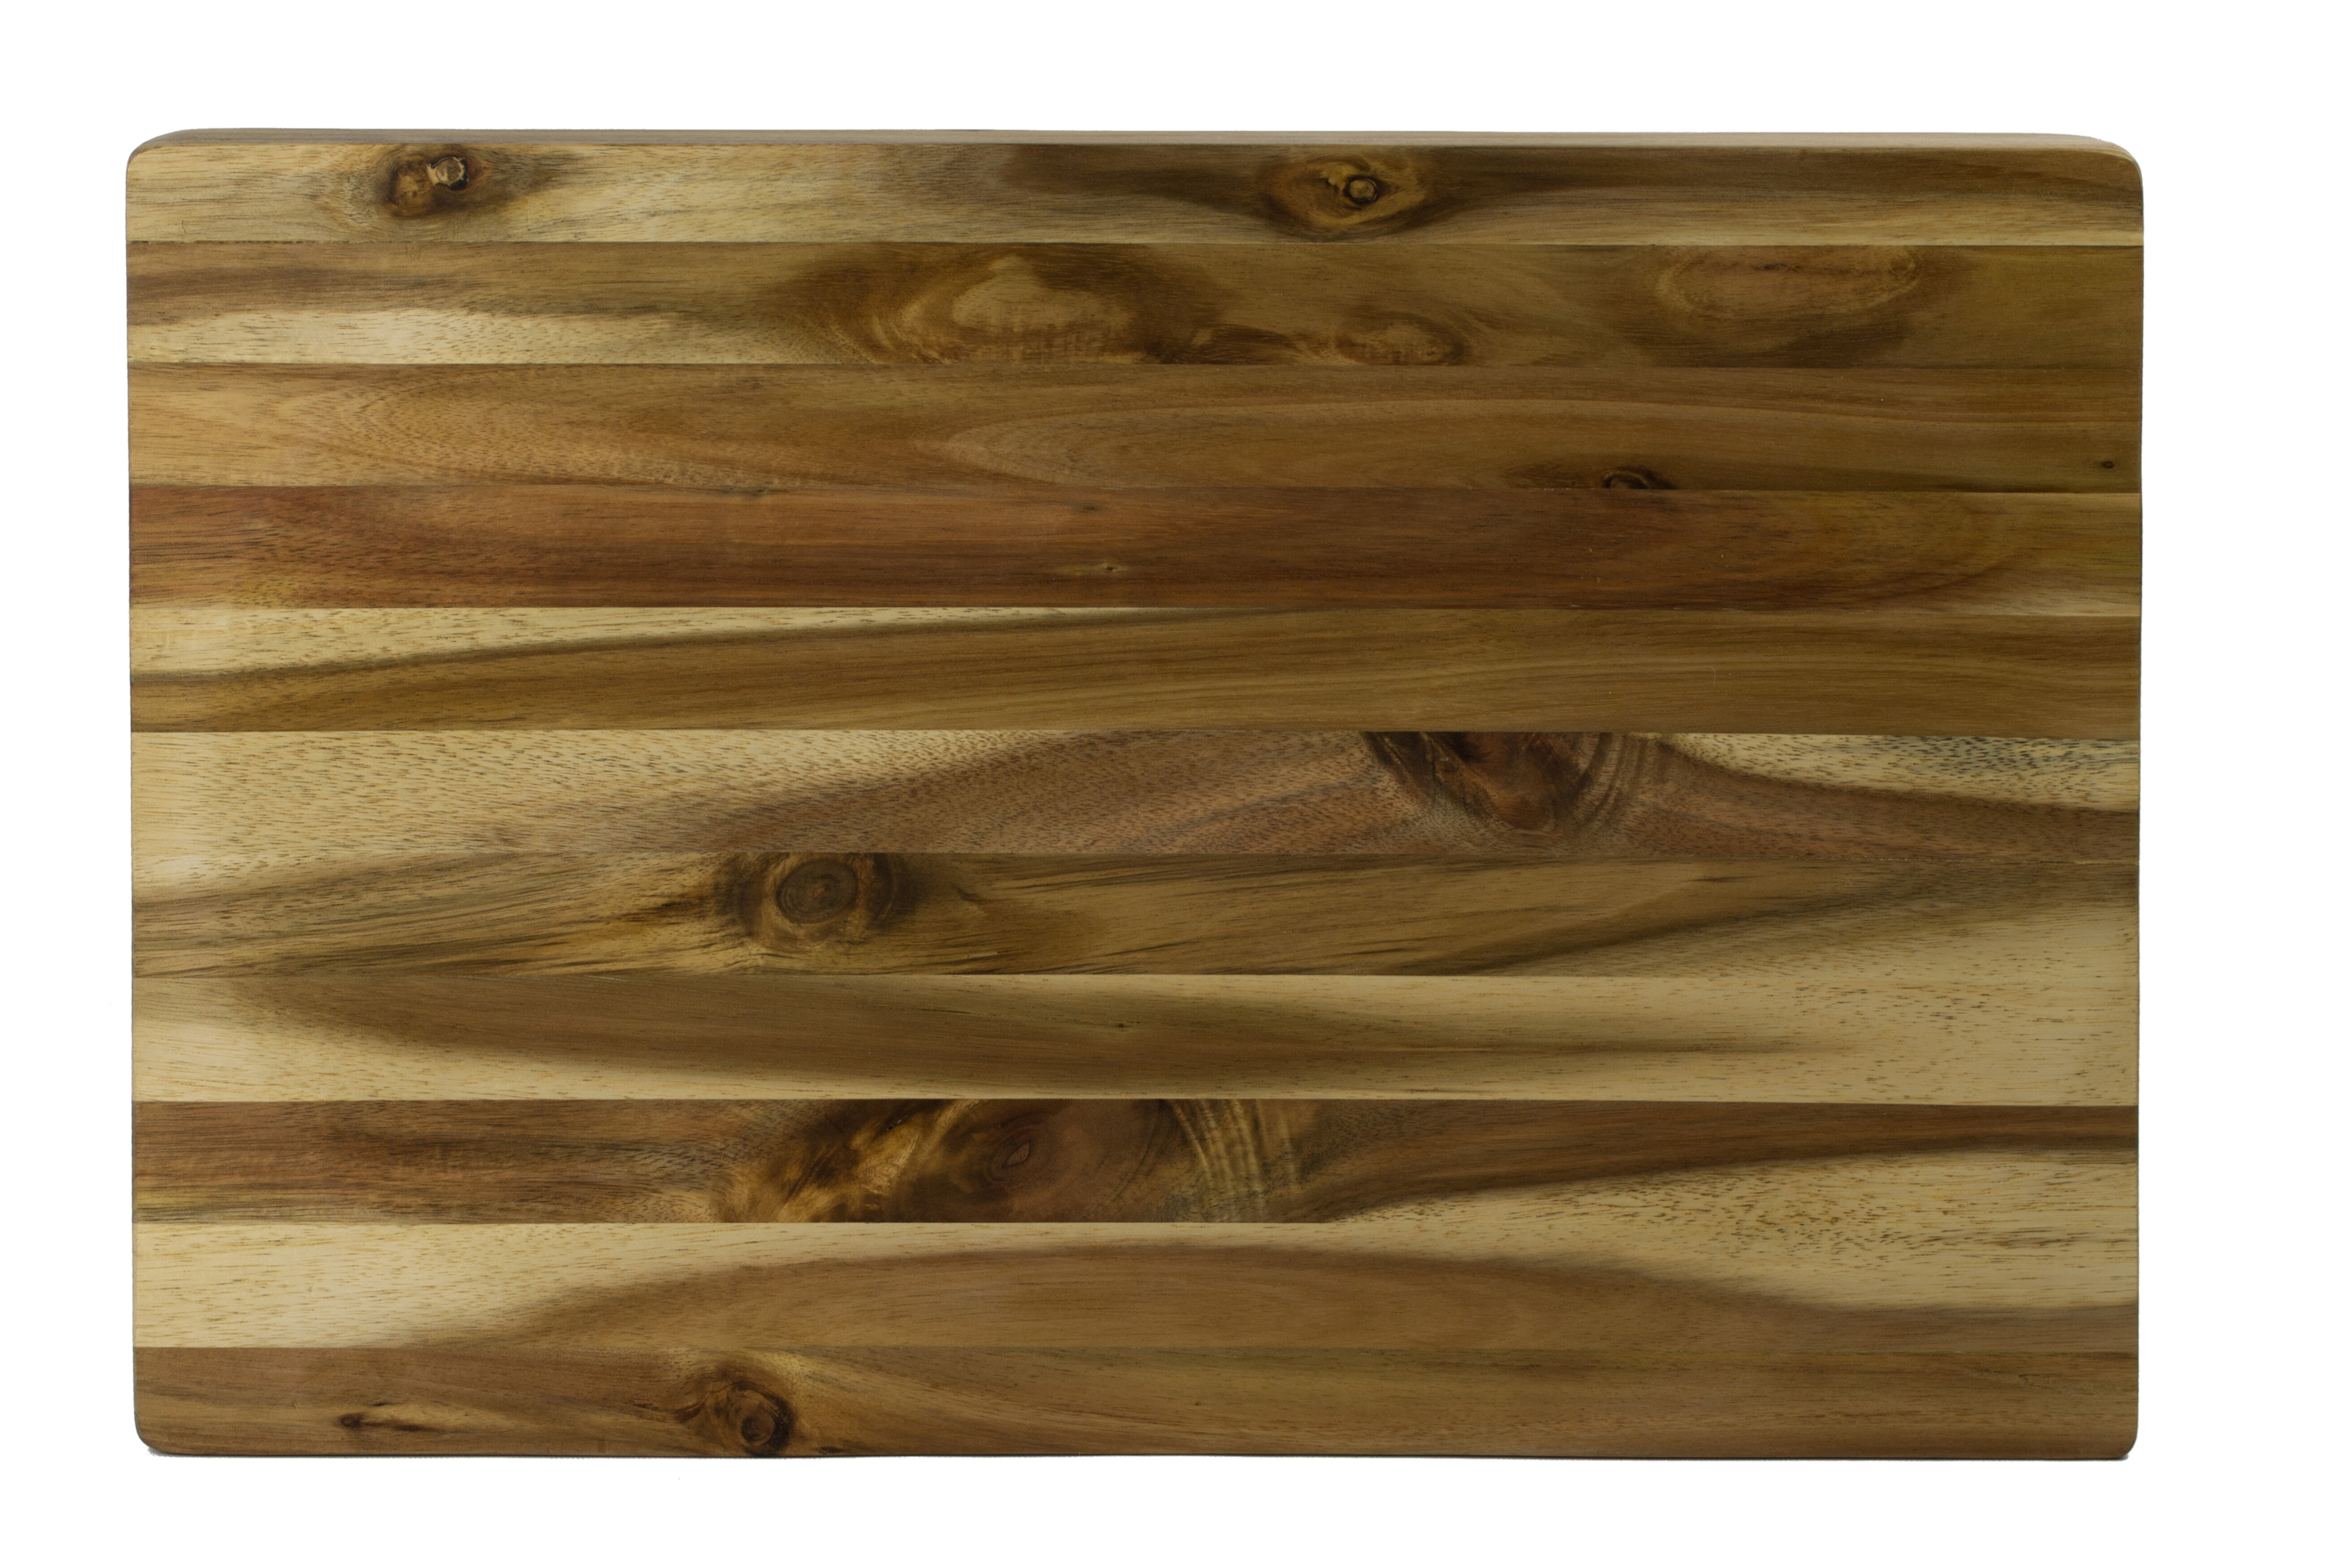 Architec Acacia Wood Concave And Grilling Cutting Board Reviews Wayfair